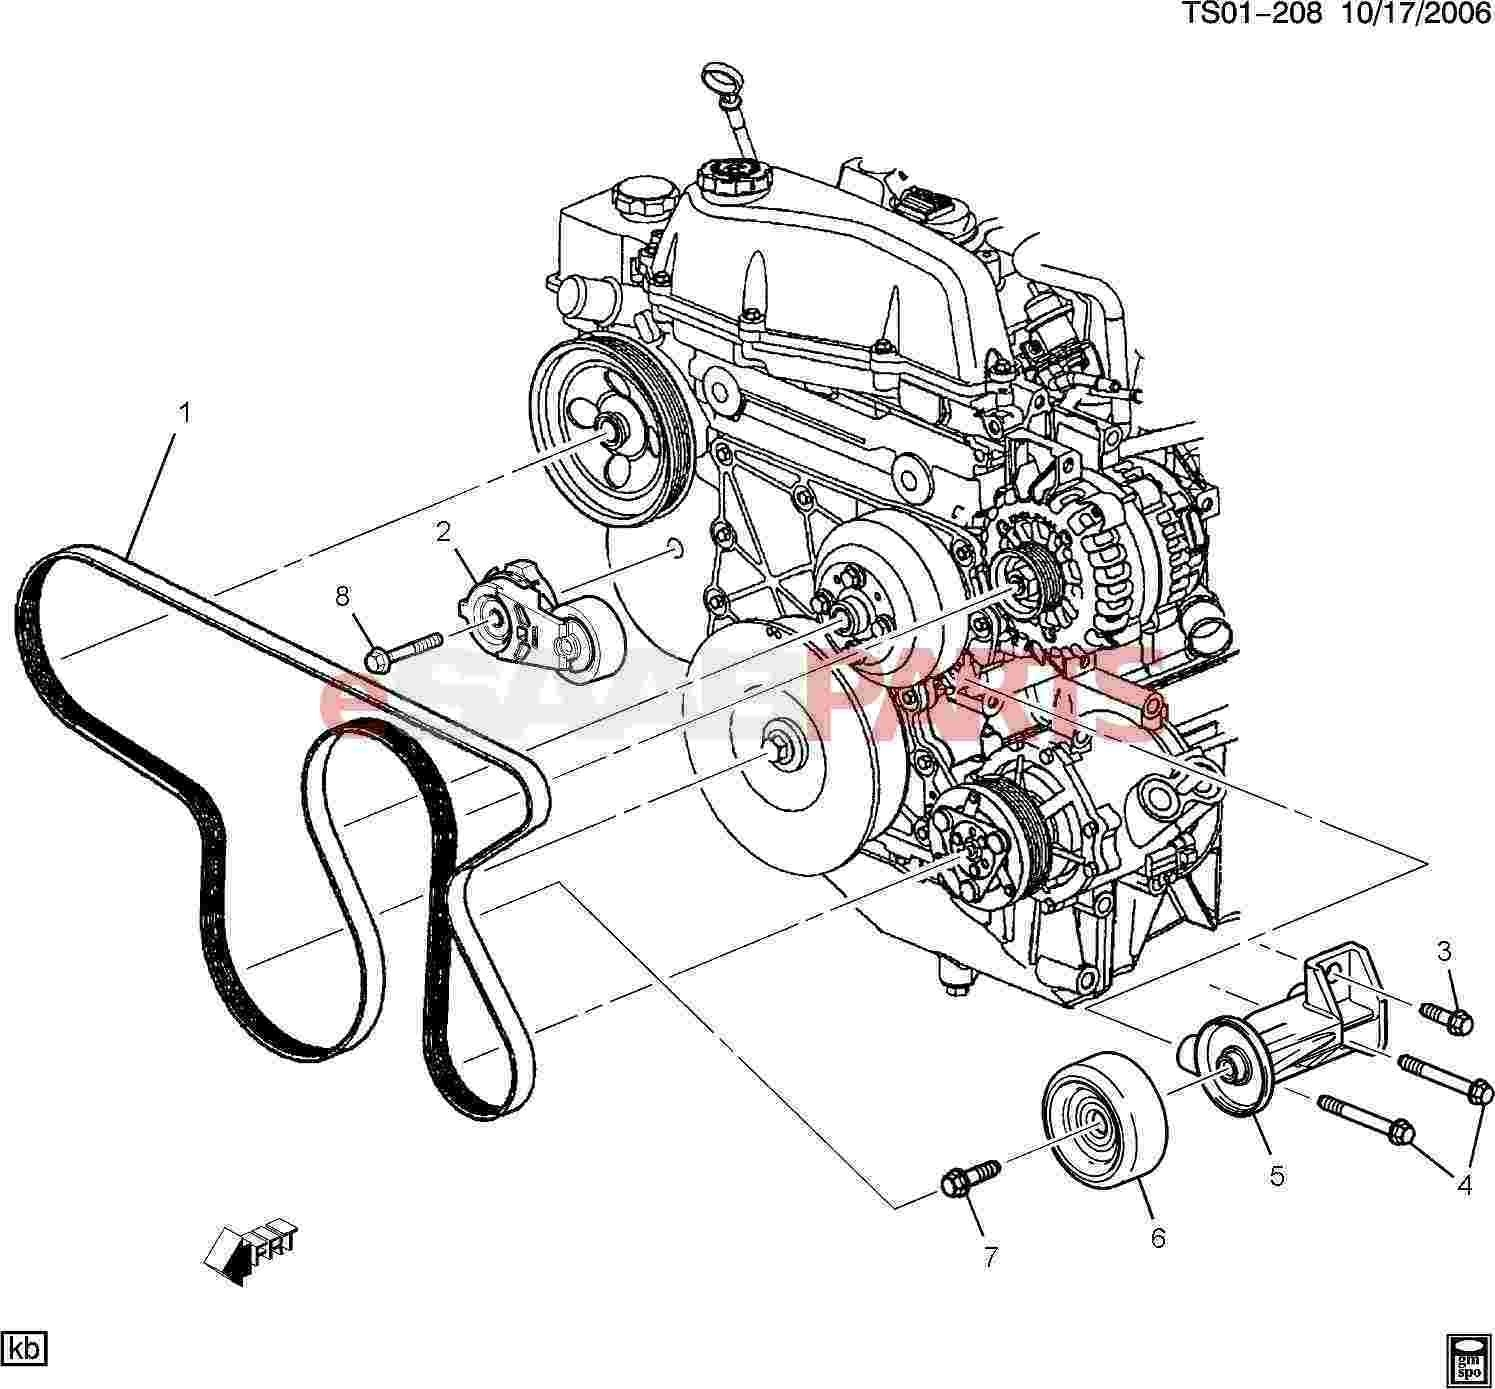 2004 toyota Tacoma Parts Diagram 2001 toyota Ta A Parts Diagram Of 2004 toyota Tacoma Parts Diagram